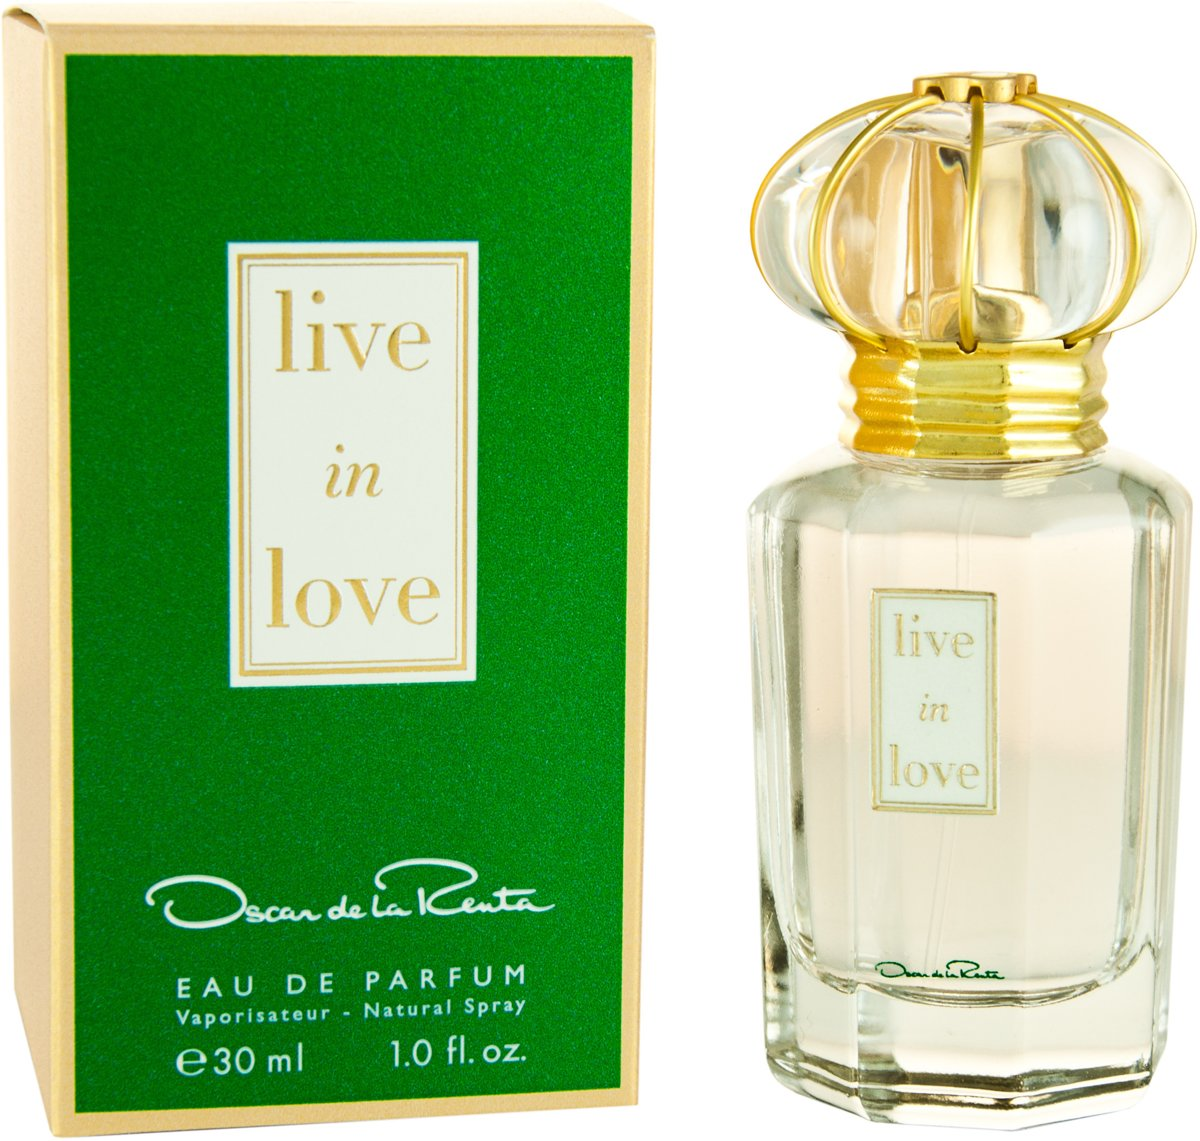 Oscar de la Renta Live in Love for Woman - 30 ml - Eau de parfum